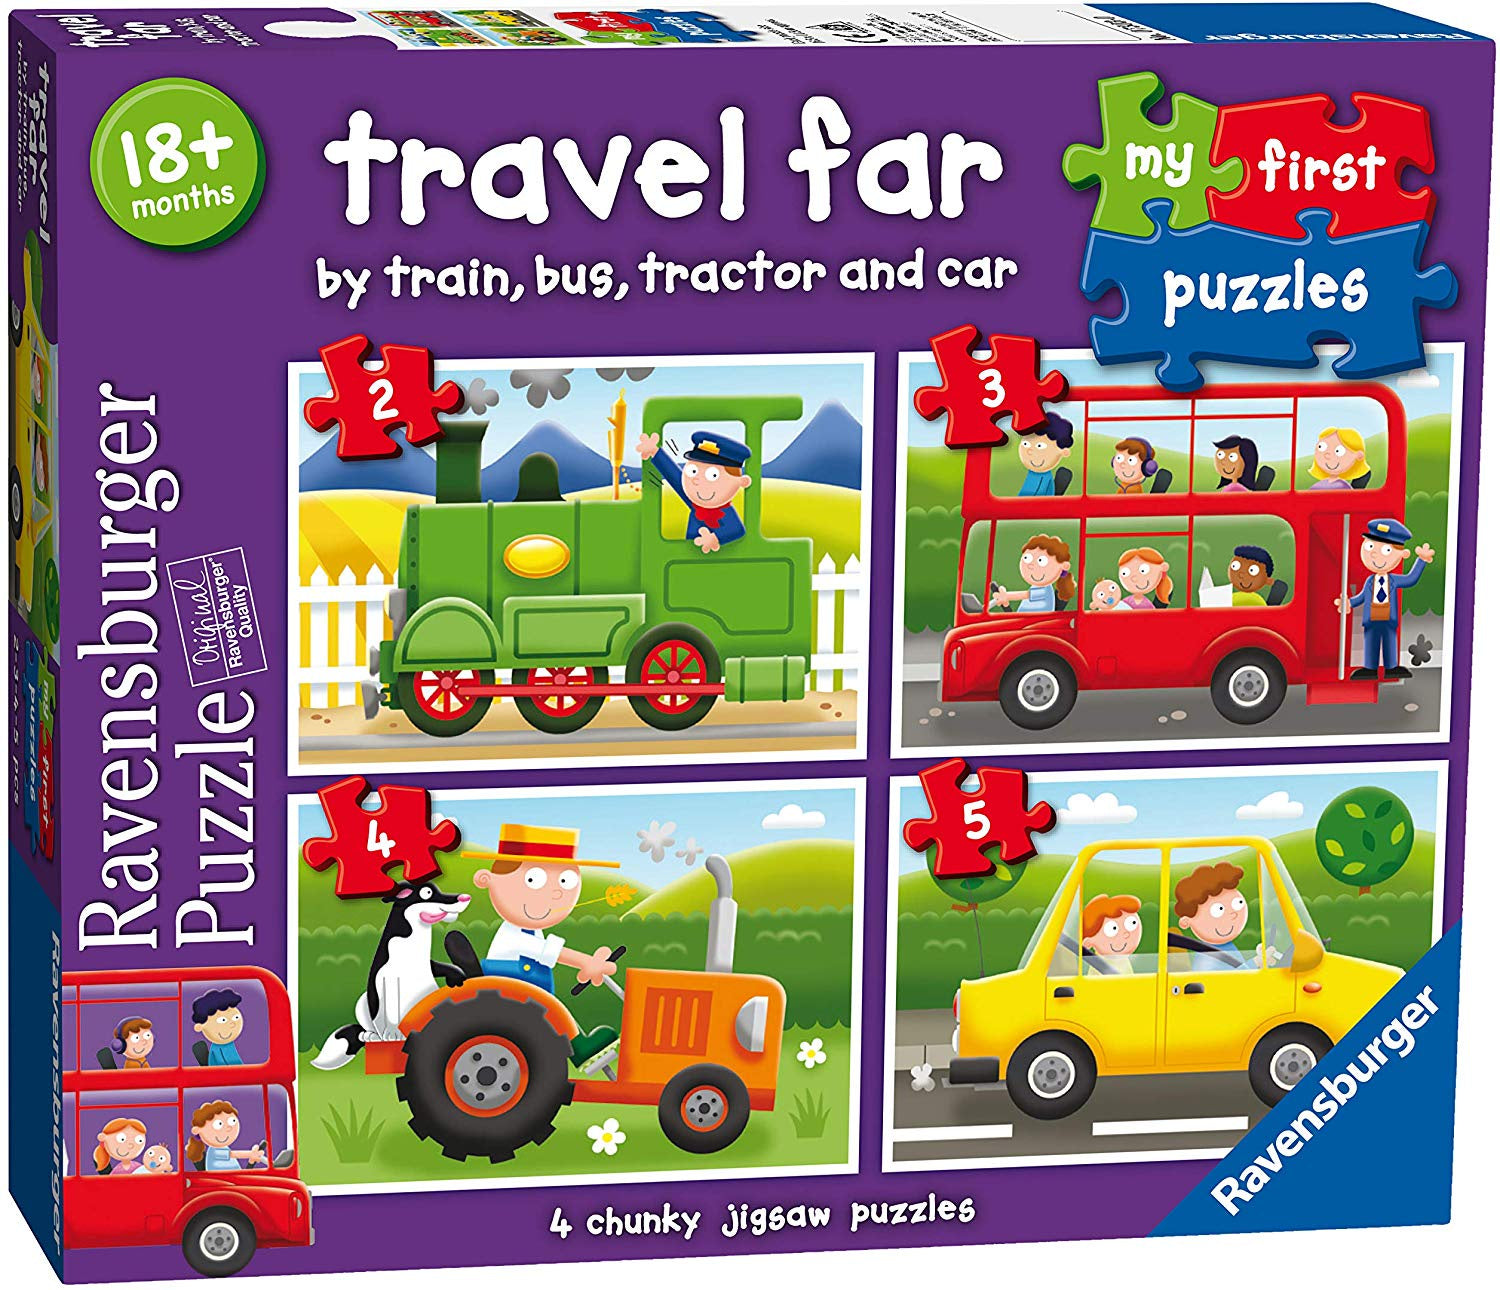 My First Jigsaw Puzzles Travel Far 4 Chunky Jigsaw Puzzle